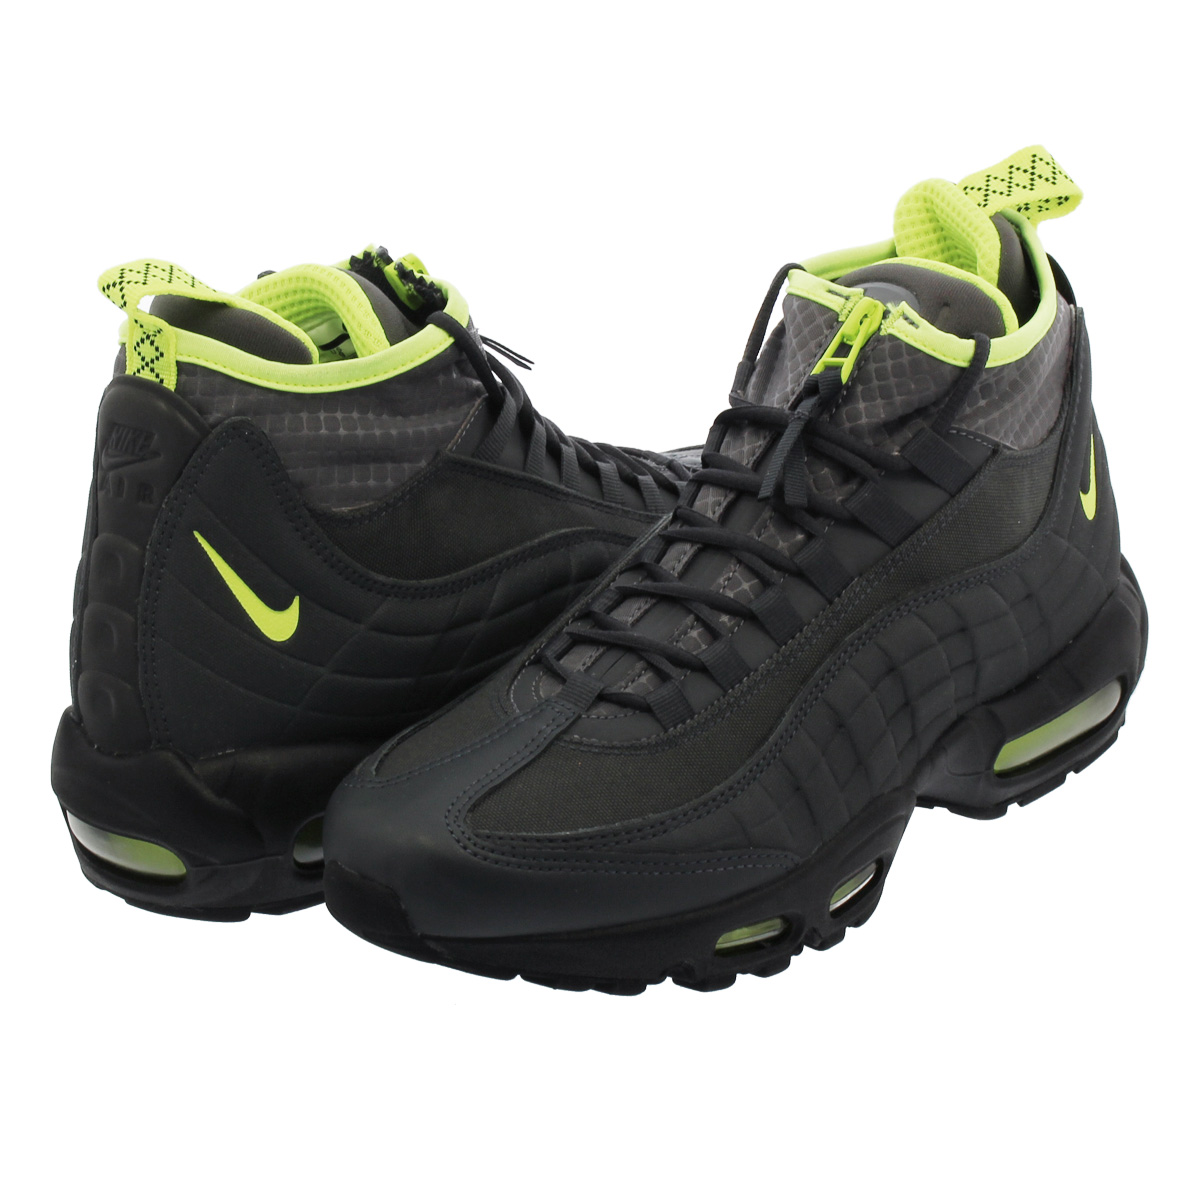 2d9e79d5a9e8 NIKE AIR MAX 95 SNEAKERBOOT Kie Ney AMAX 95 sneakers boots ANTHRACITE VOLT  DARK GREY 806